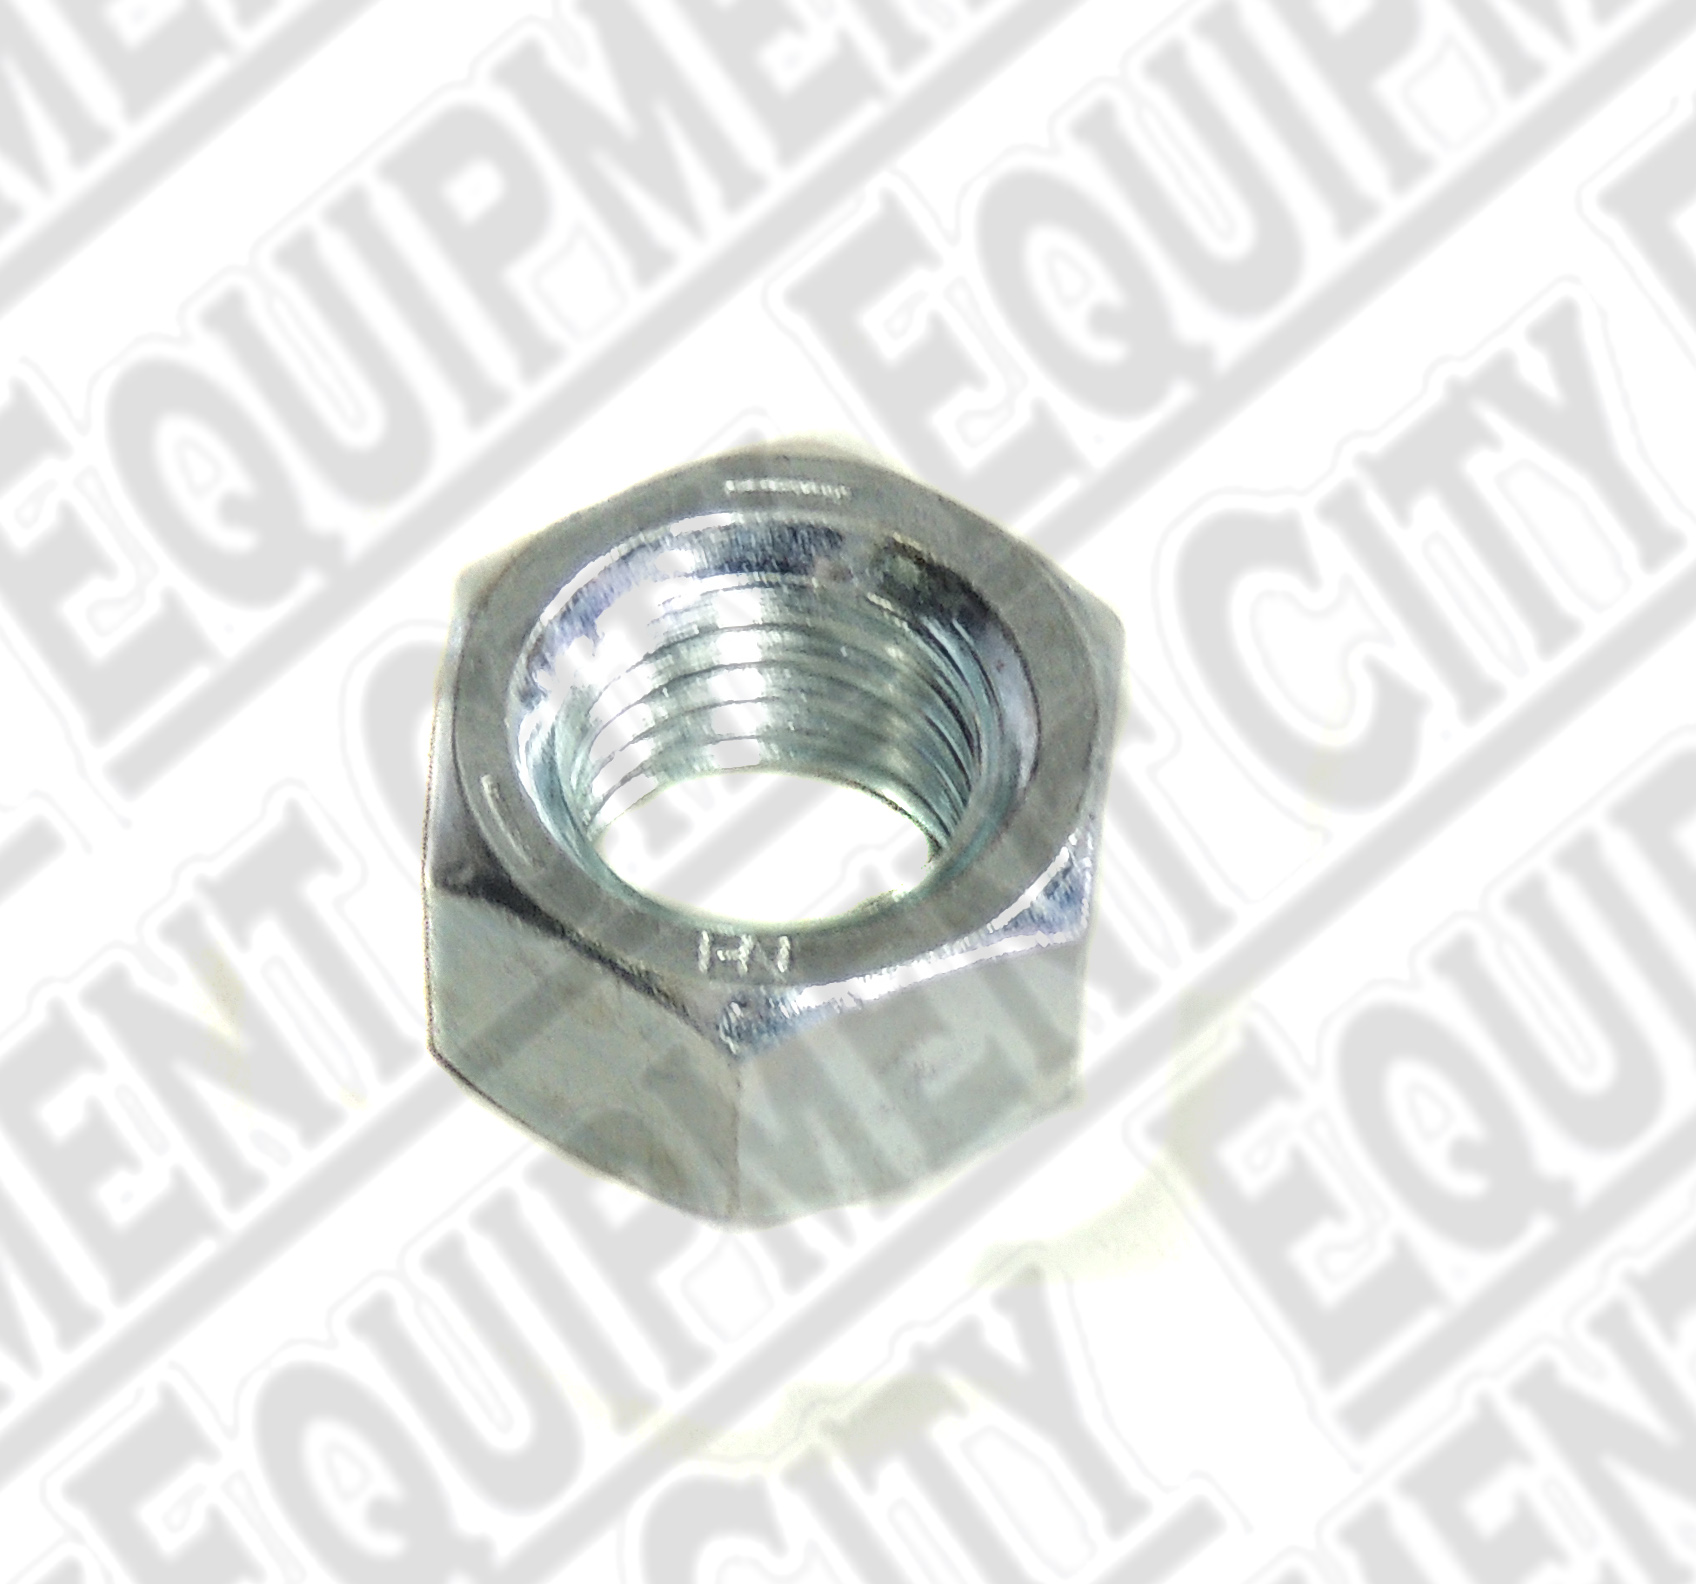 Rotary 40760 3/4-10NC HEX NUT PLATED